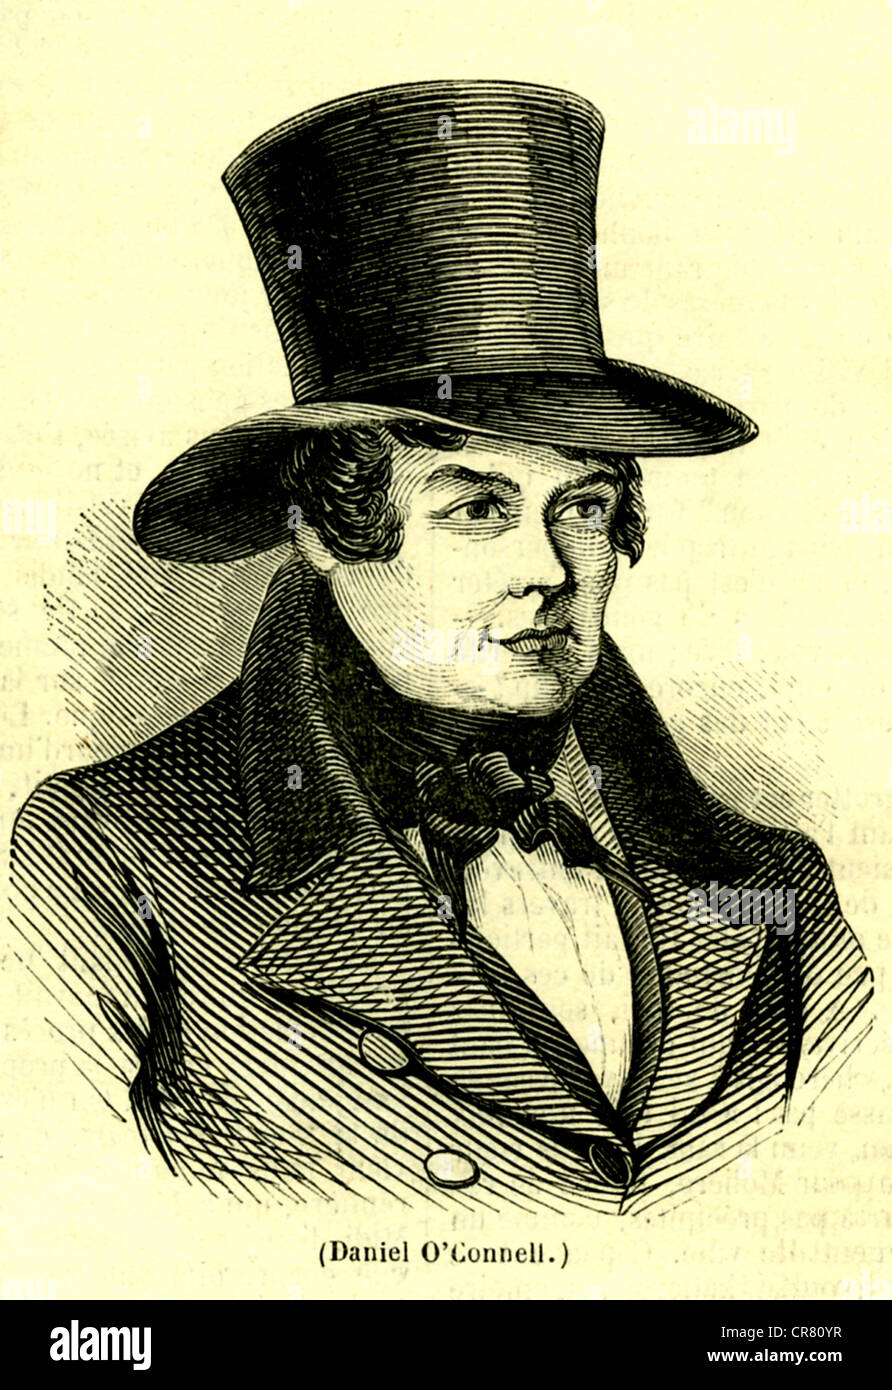 Daniel O'Connell, Irish political leader and lawyer, 1755-1847, historical illustration, 1858 - Stock Image